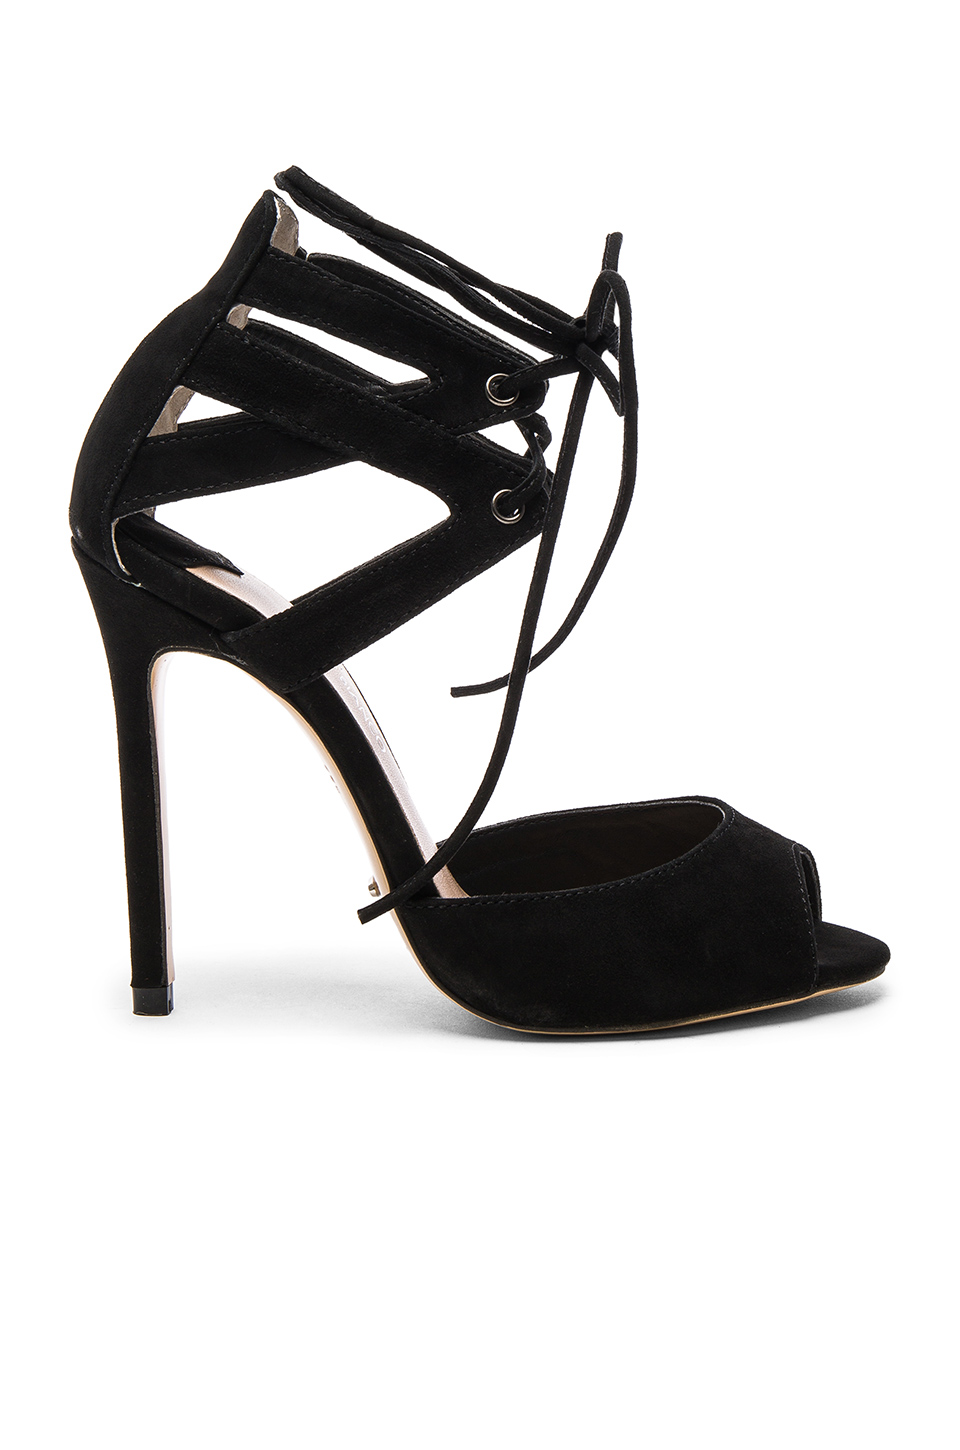 Tony Bianco Kayes Heel in Black Kid Suede